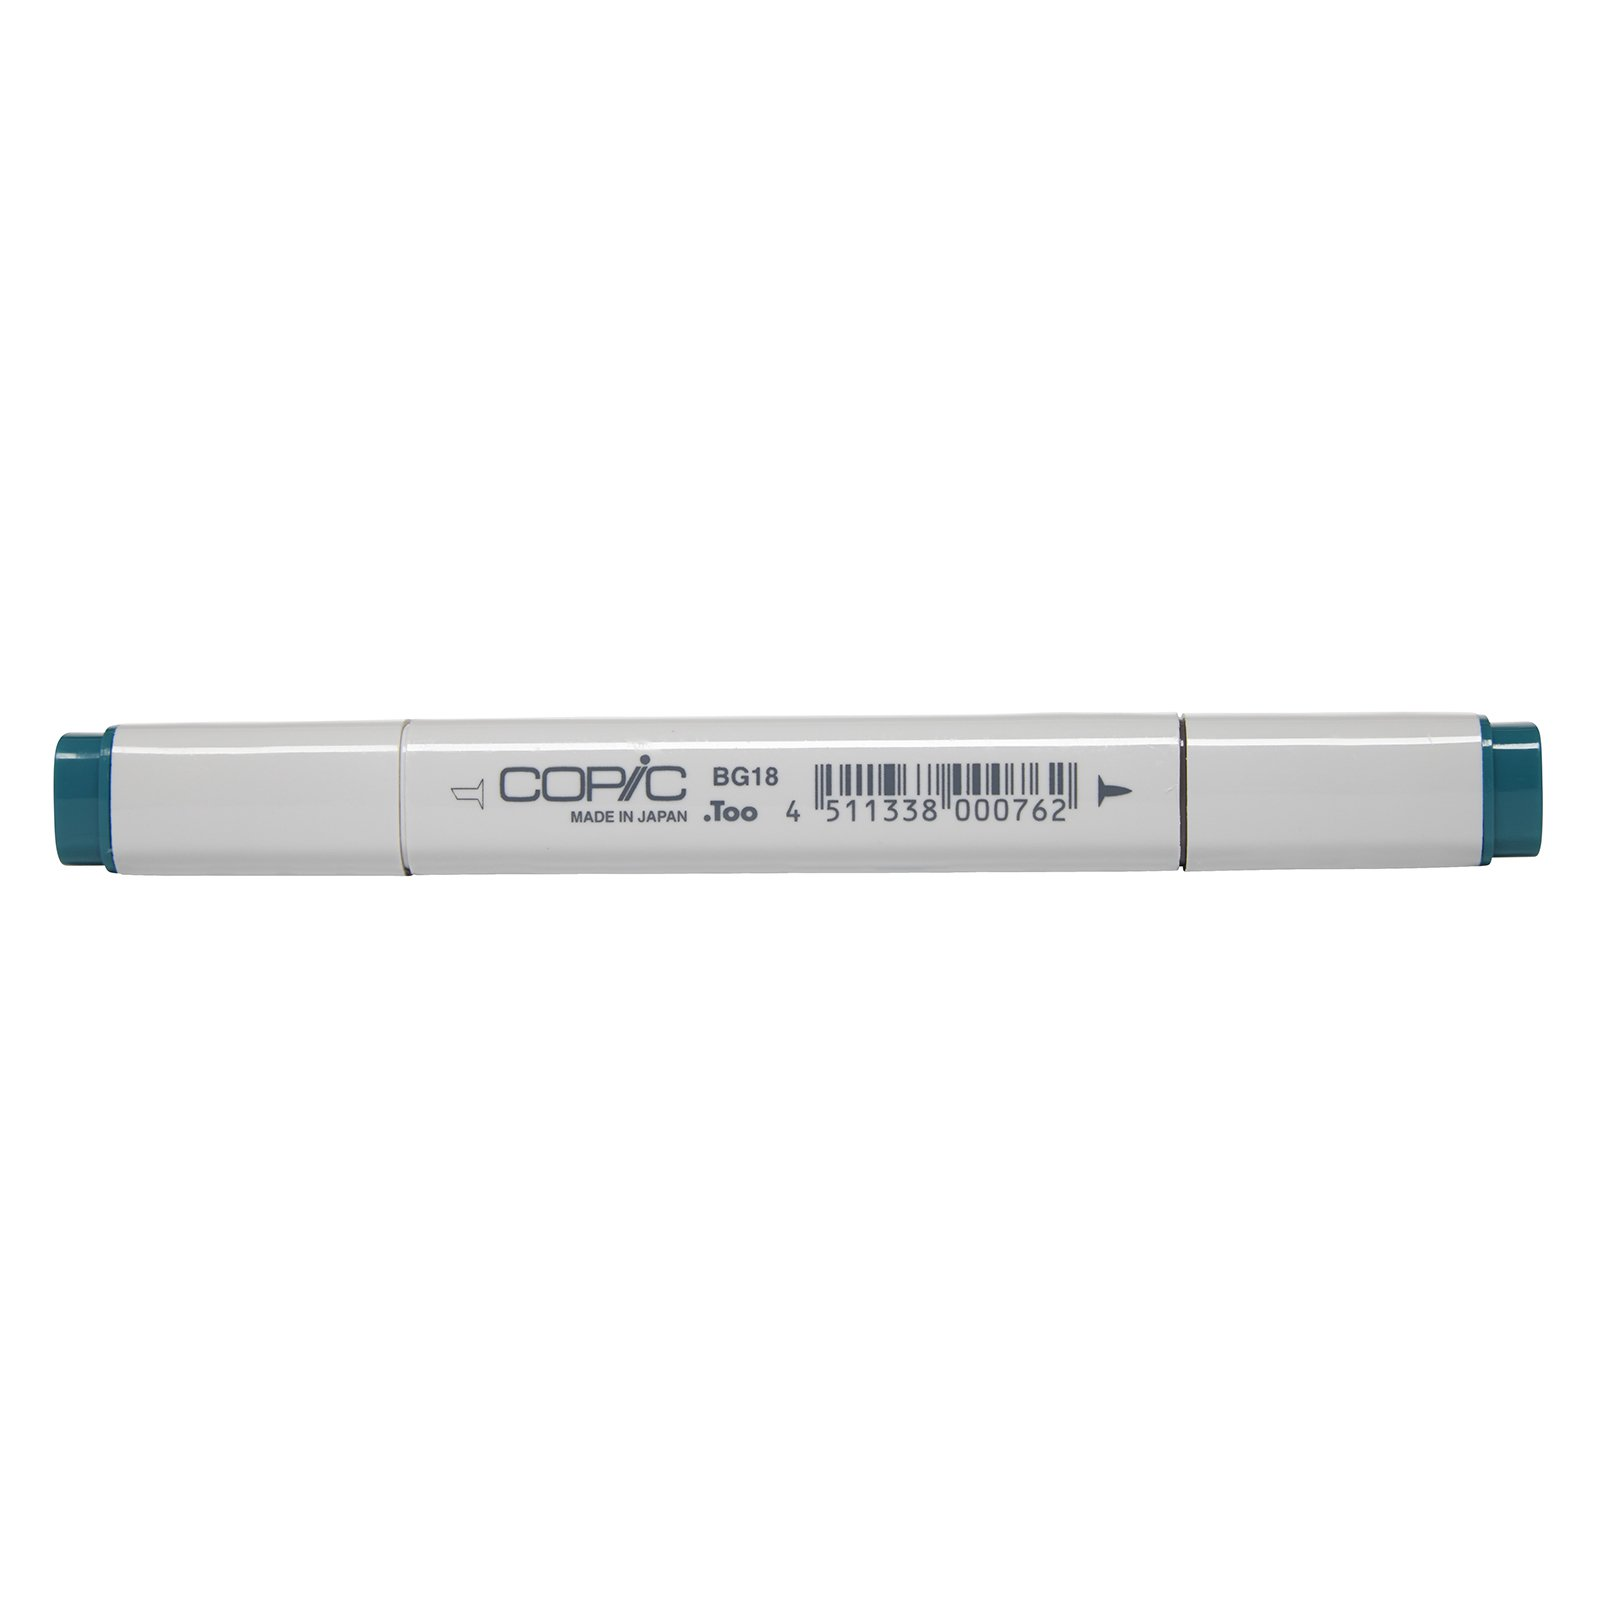 Copic Marker with Replaceable Nib, BG18-Copic, Teal Blue